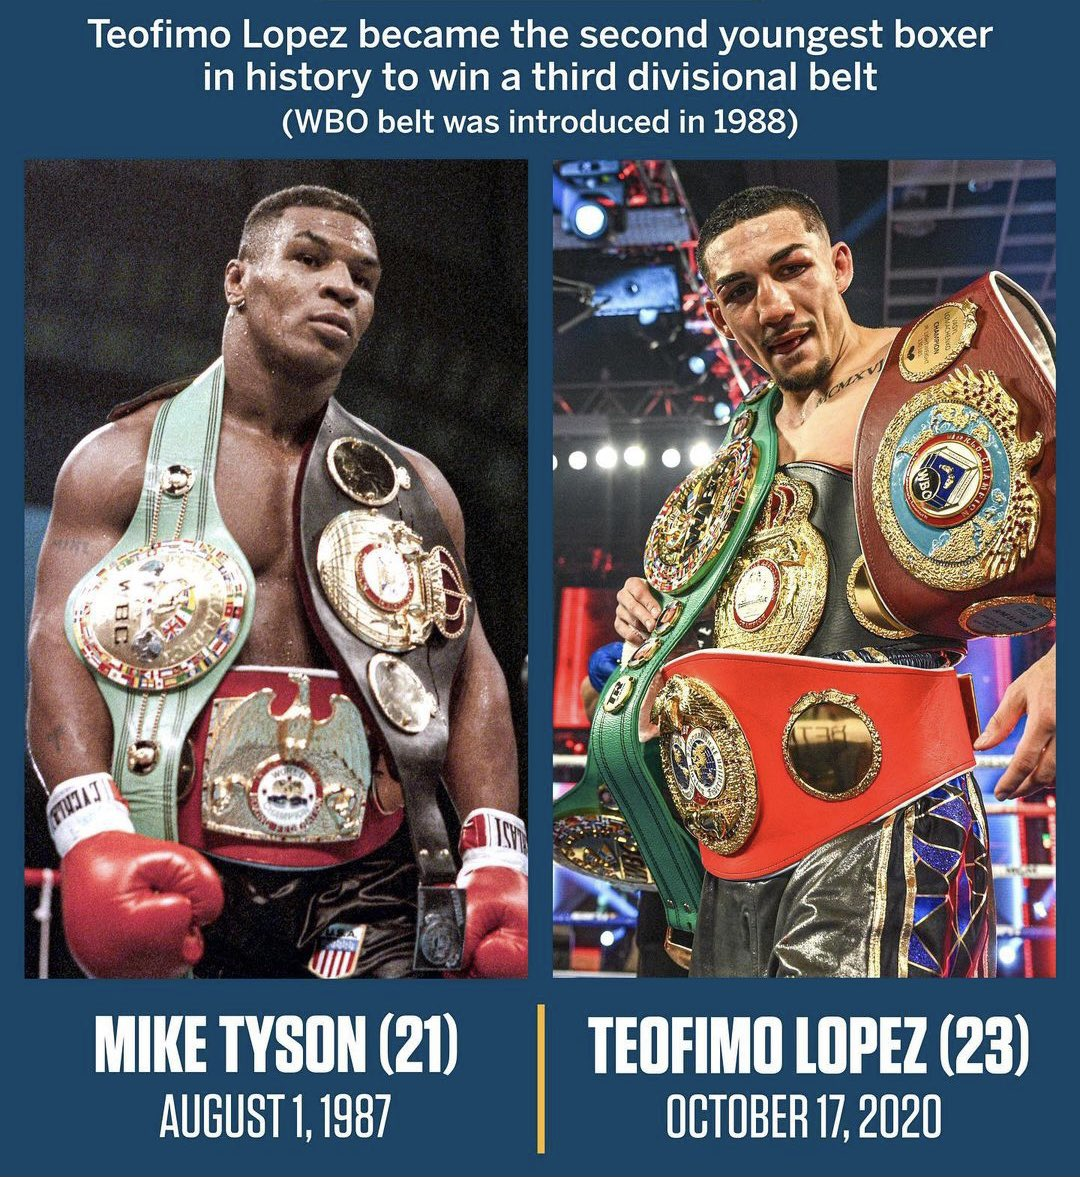 With his win over Lomachenko last year, Teofimo Lopez became the second youngest three-belt champion in boxing history.